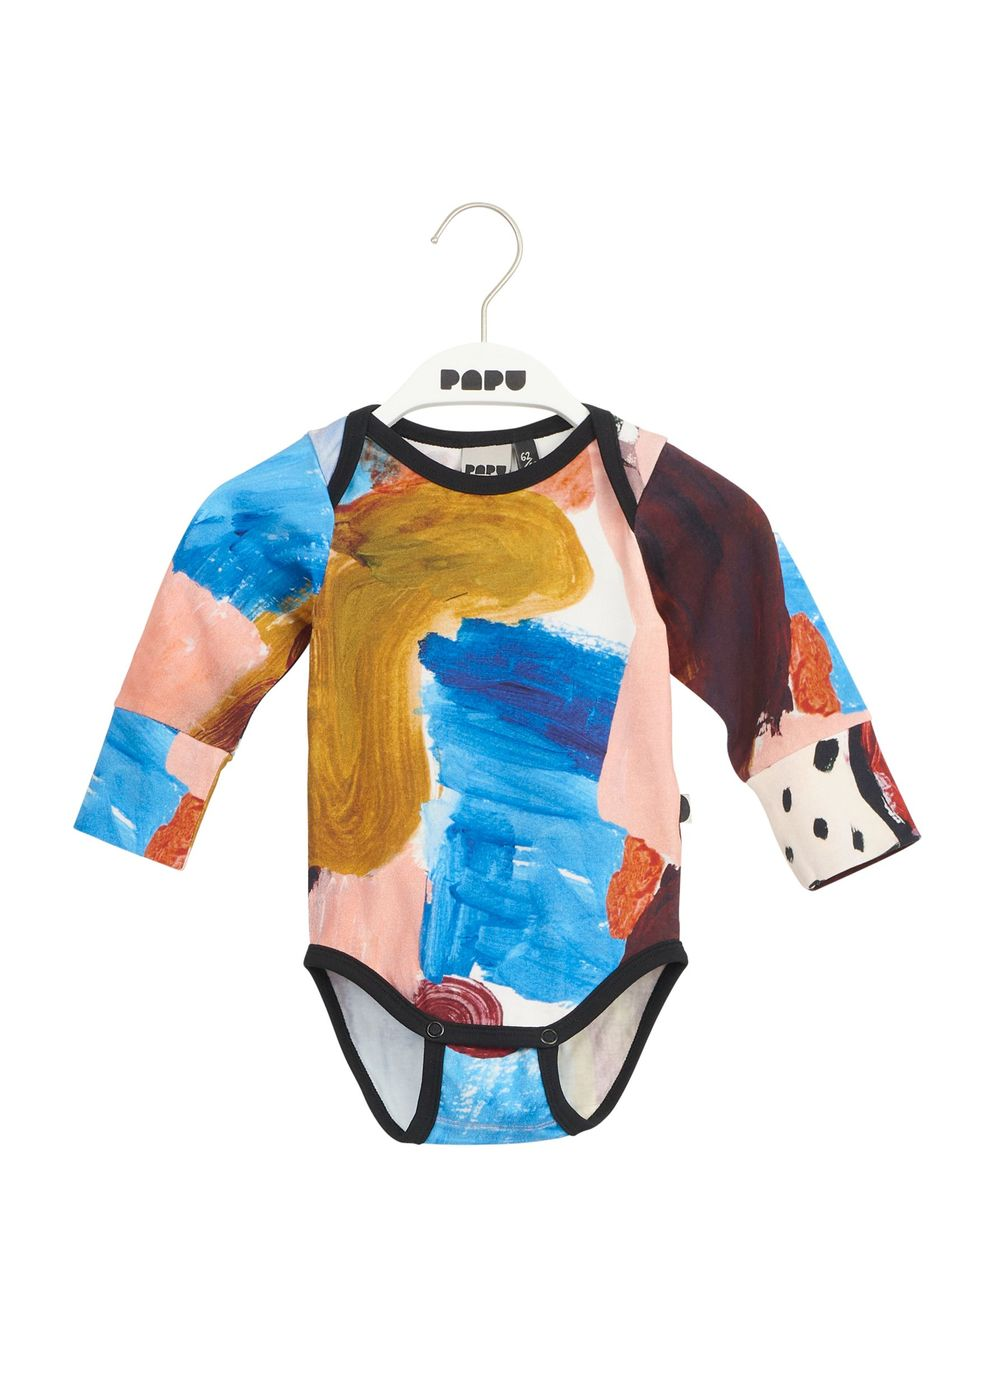 PAPU EXPRESSION LS BODY, MULTICOLOR